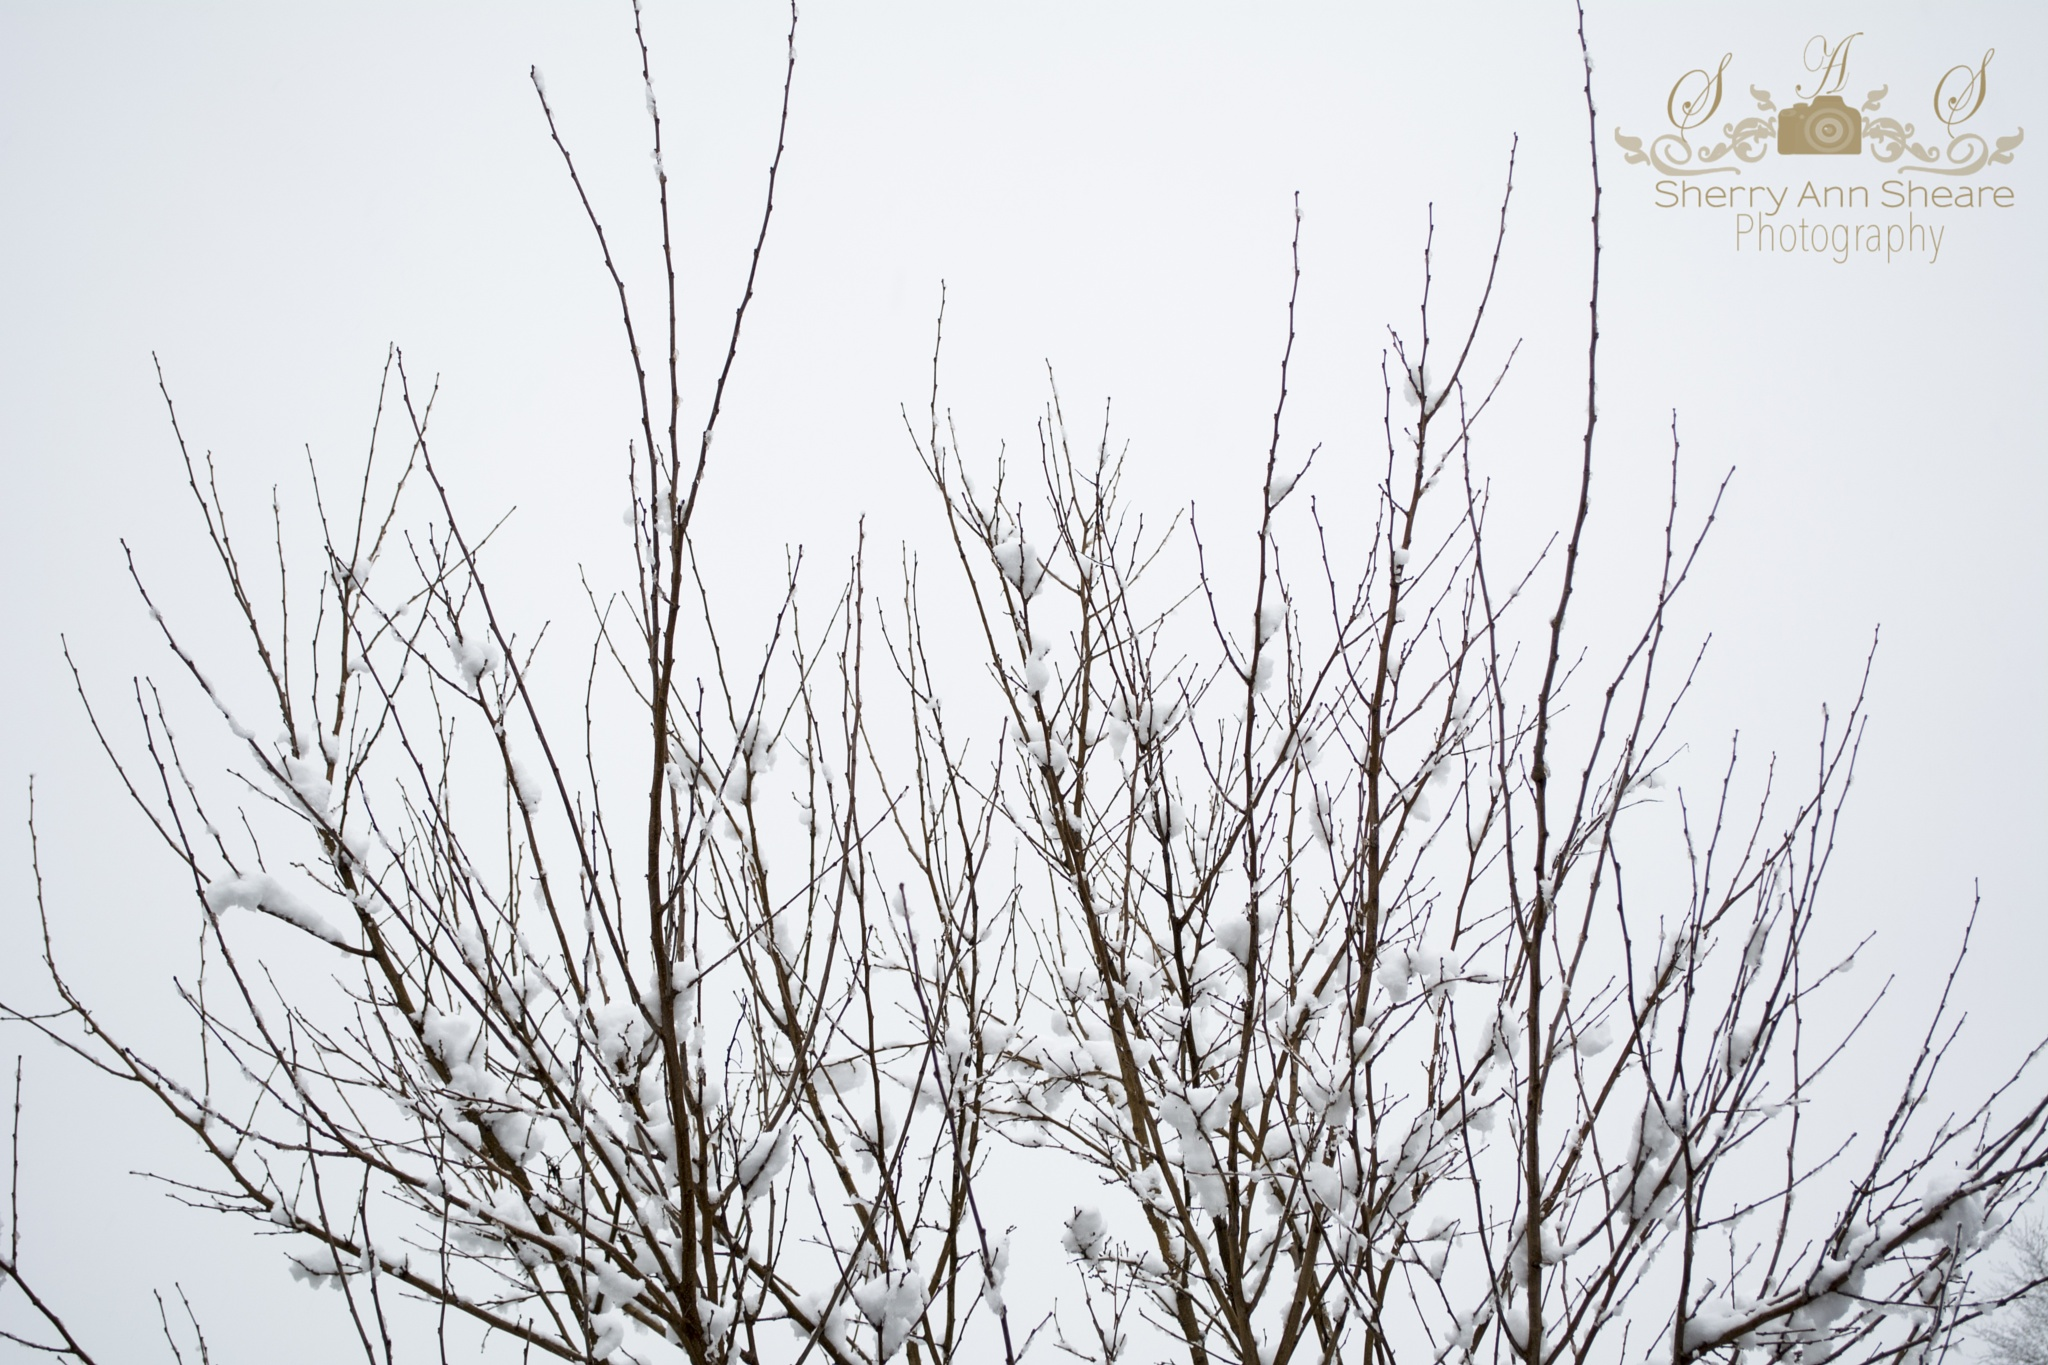 Snow and Branches by Sherry Ann Sheare